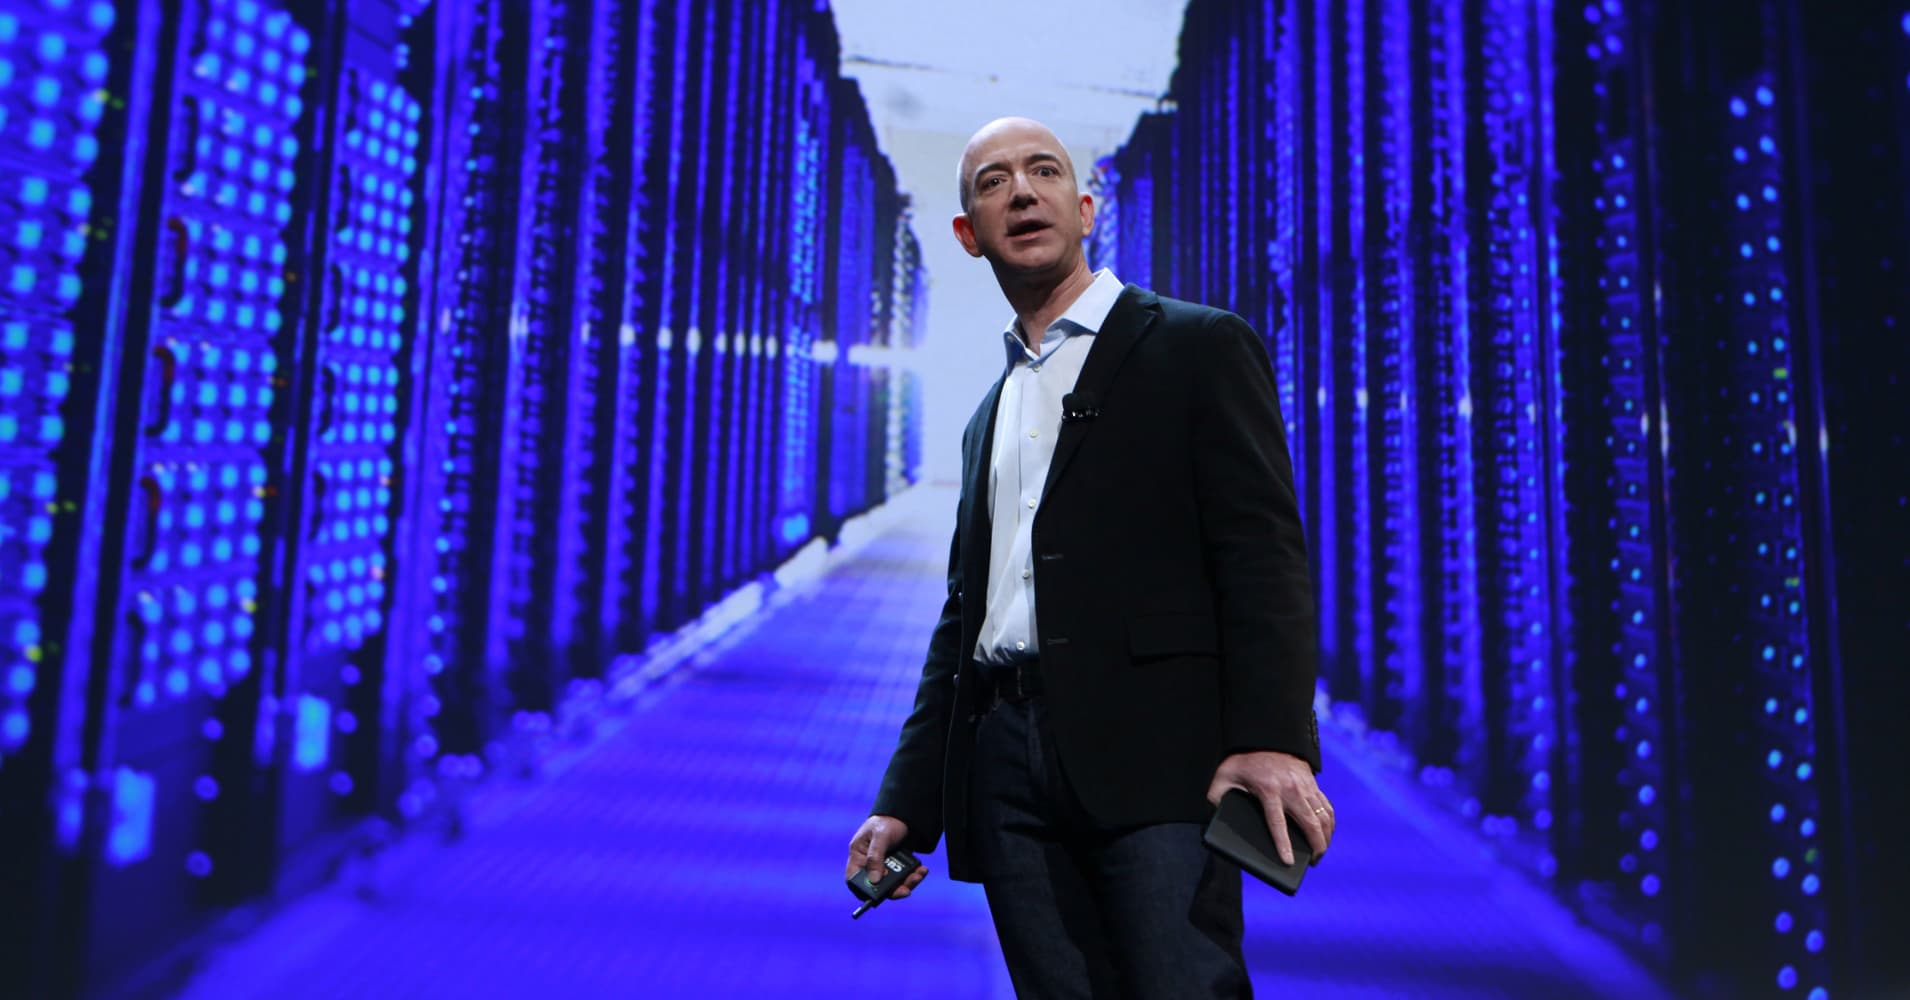 Jeff Bezos fell prey to stolen text messages — here's how to keep yours private